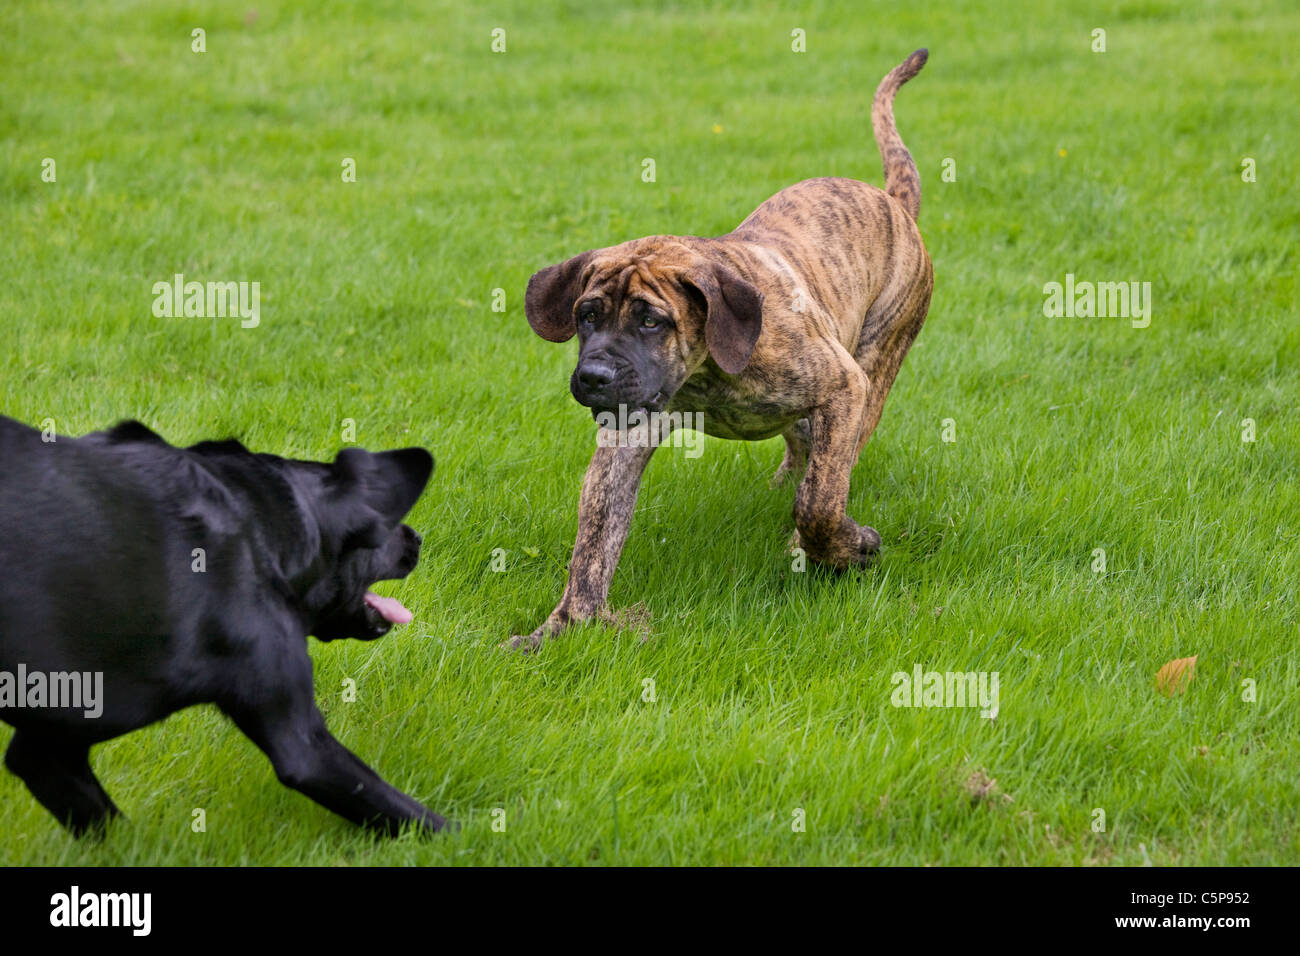 how to stop dogs play fighting